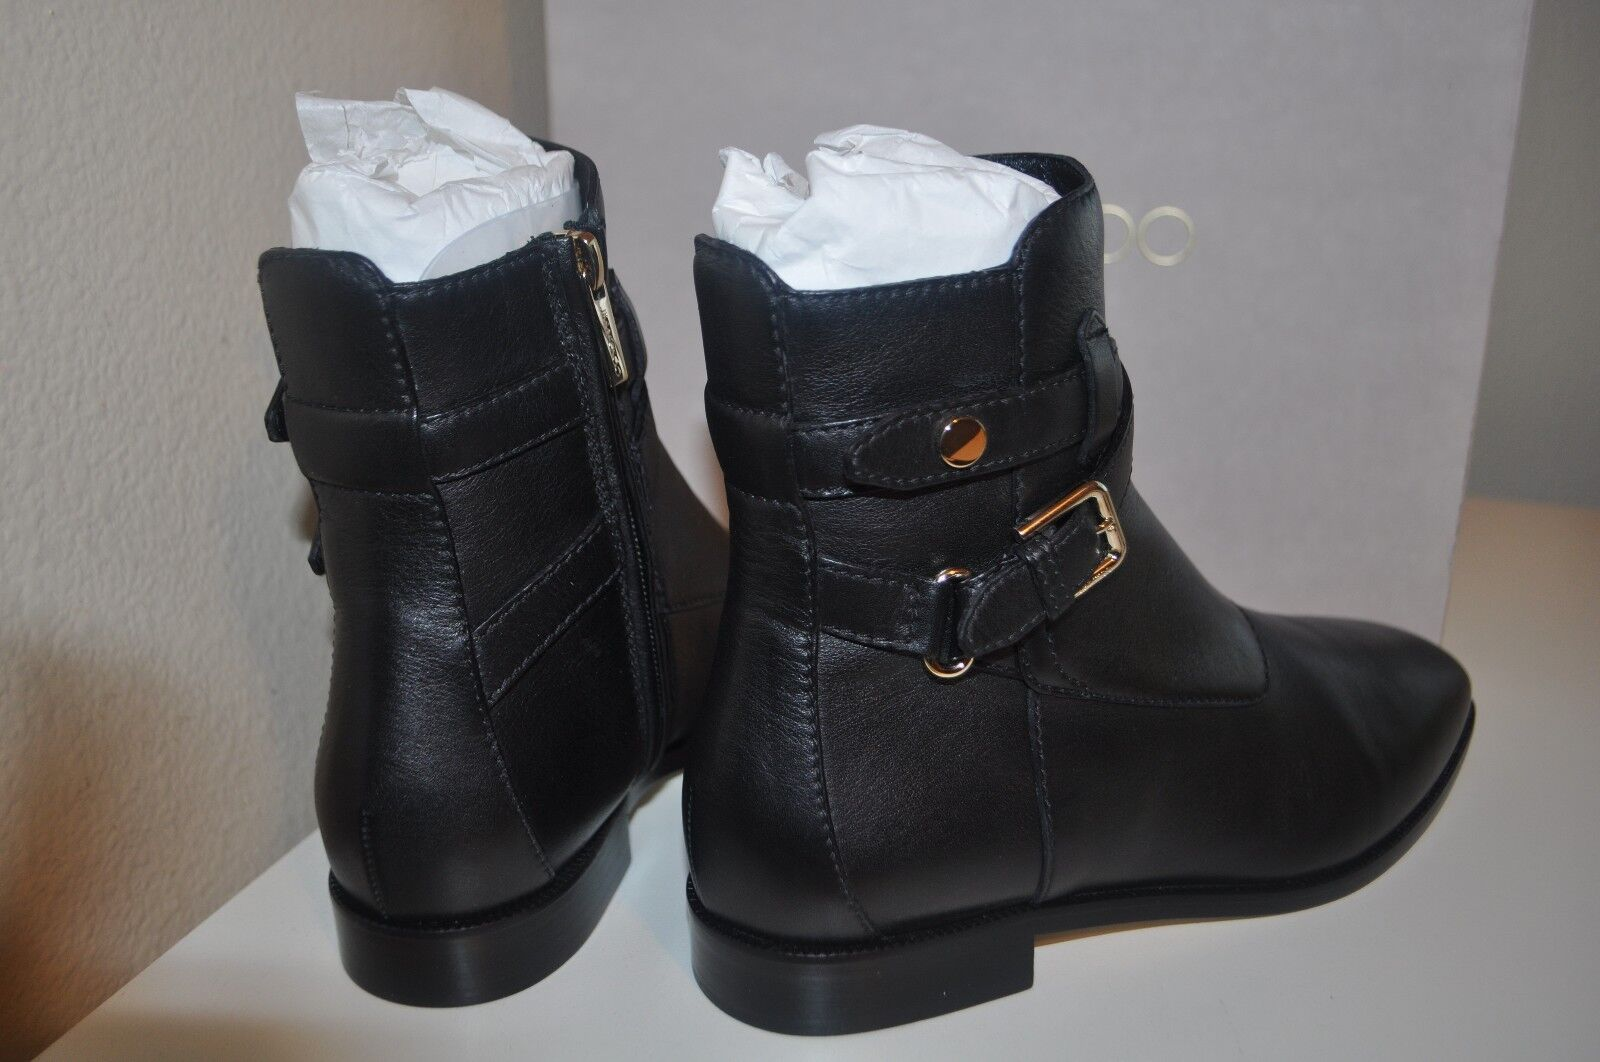 e7dbc55d6e9 ... NIB Jimmy Choo Mitchel Buckle Ankle Bootie Flat Boot Boot Boot Black  Leather 37.5 - 7.5 ...